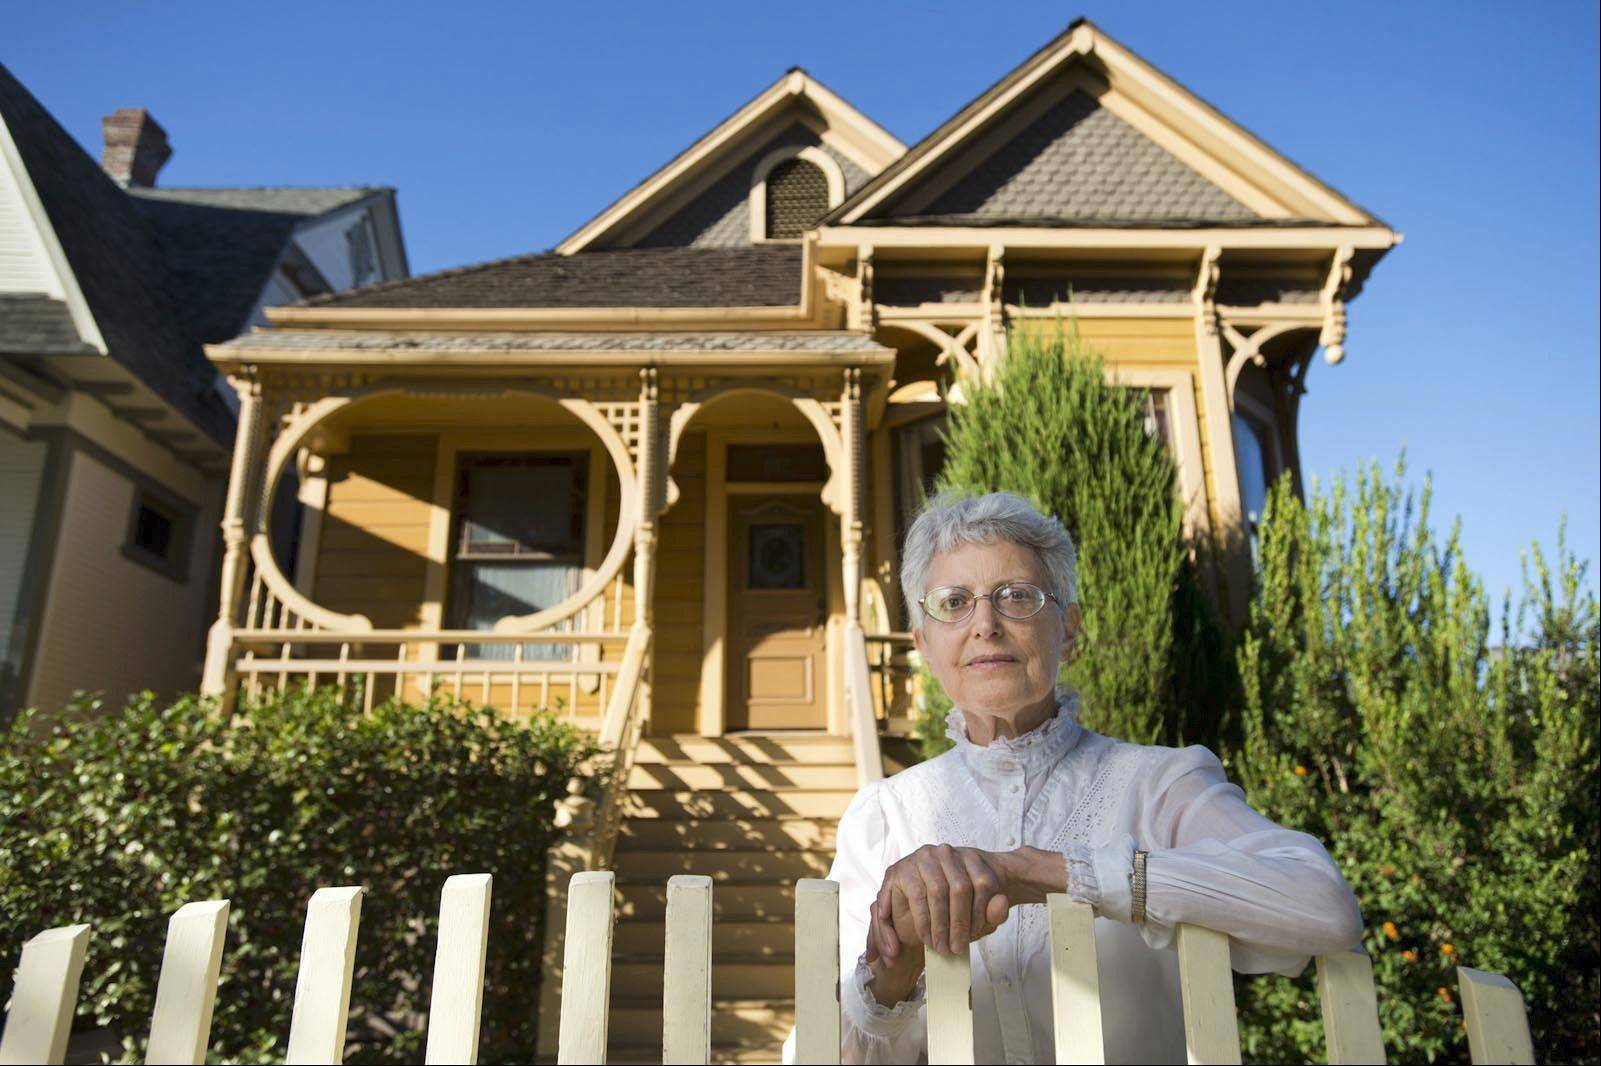 Victorian owner Dr. Louise Mehler stands in the front of her 1893 vintage era home.